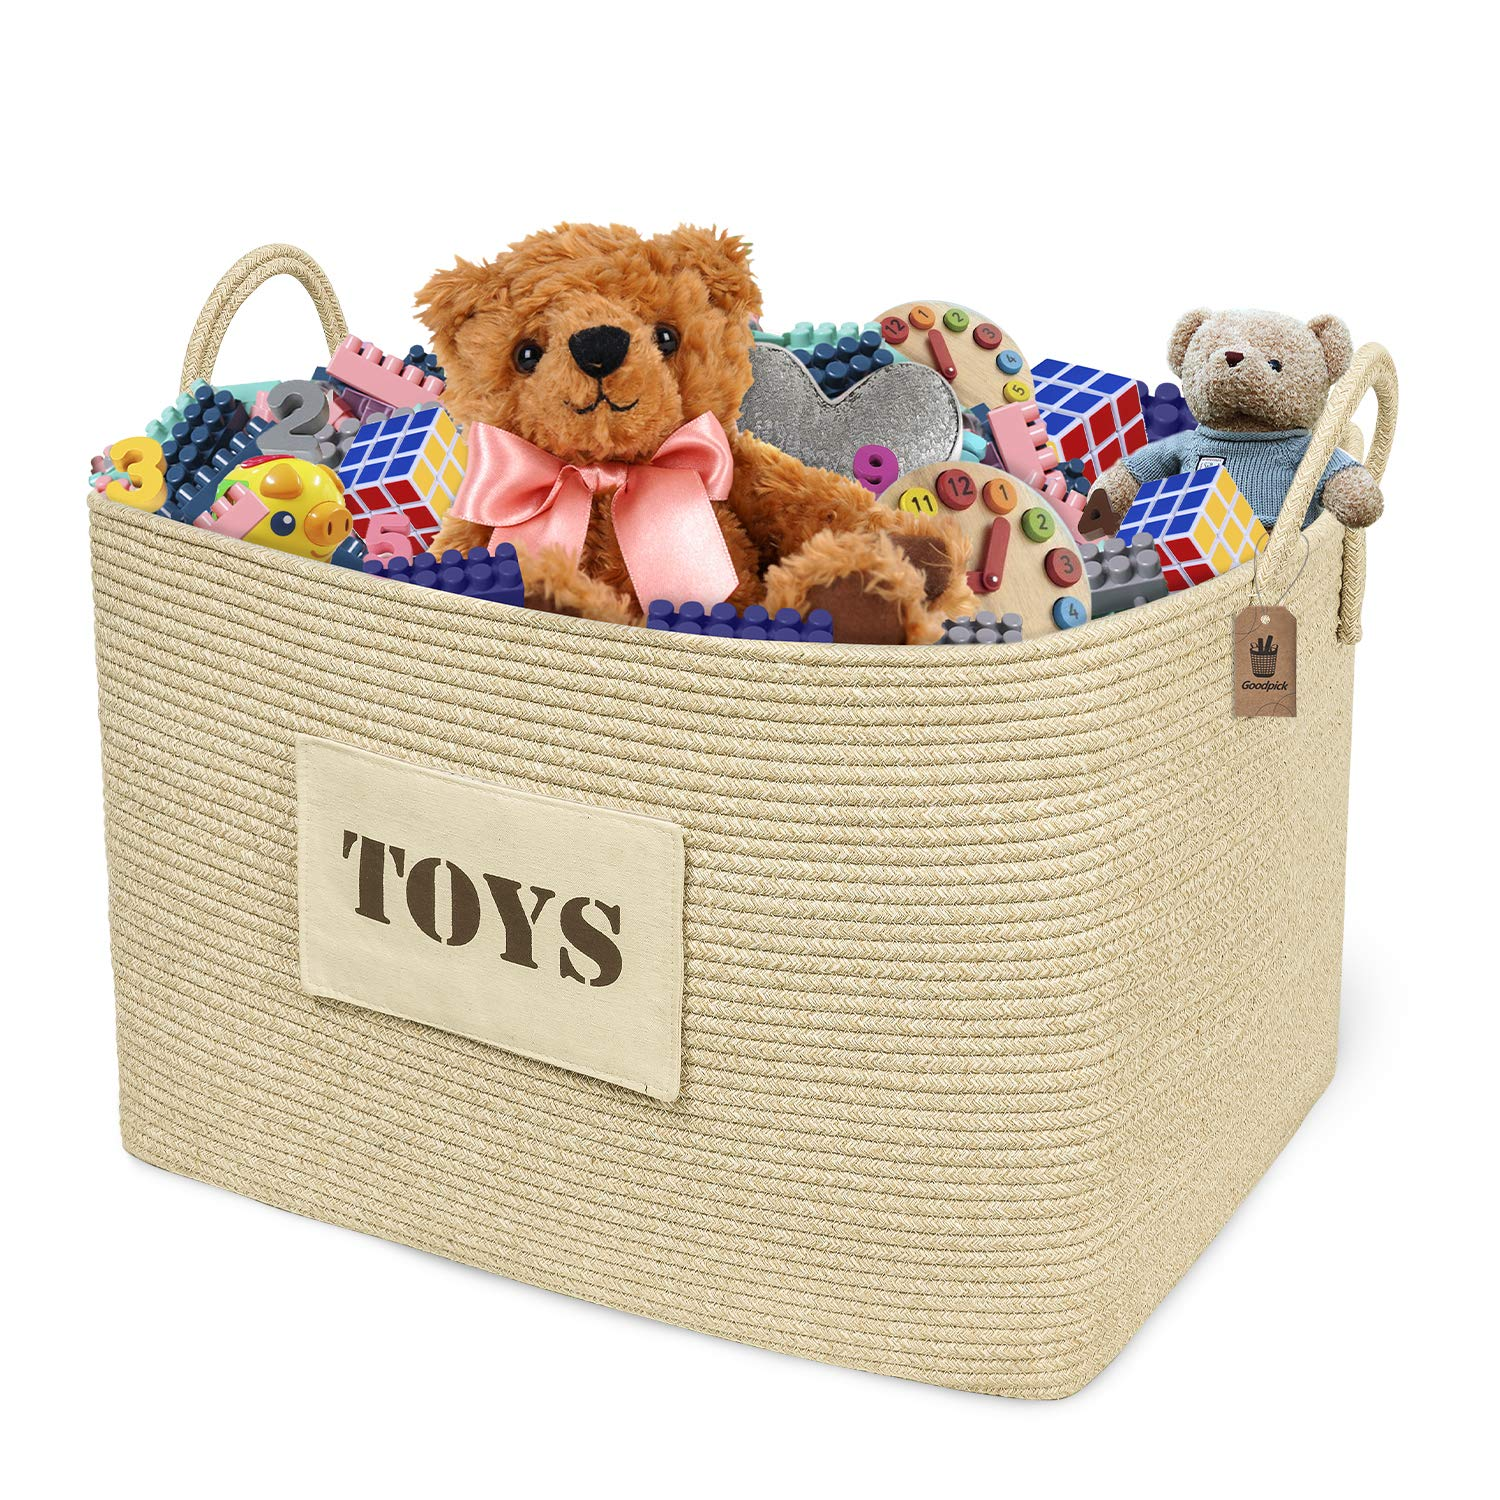 Goodpick Large Toy Storage Basket 22'' x 15'' x 14'' -Toy Chest Storage for Girls Decorative Clothes Hamper Basket for Living Room Woven Baby Laundry Basket for Blankets Cotton Rope Basket for Pillows